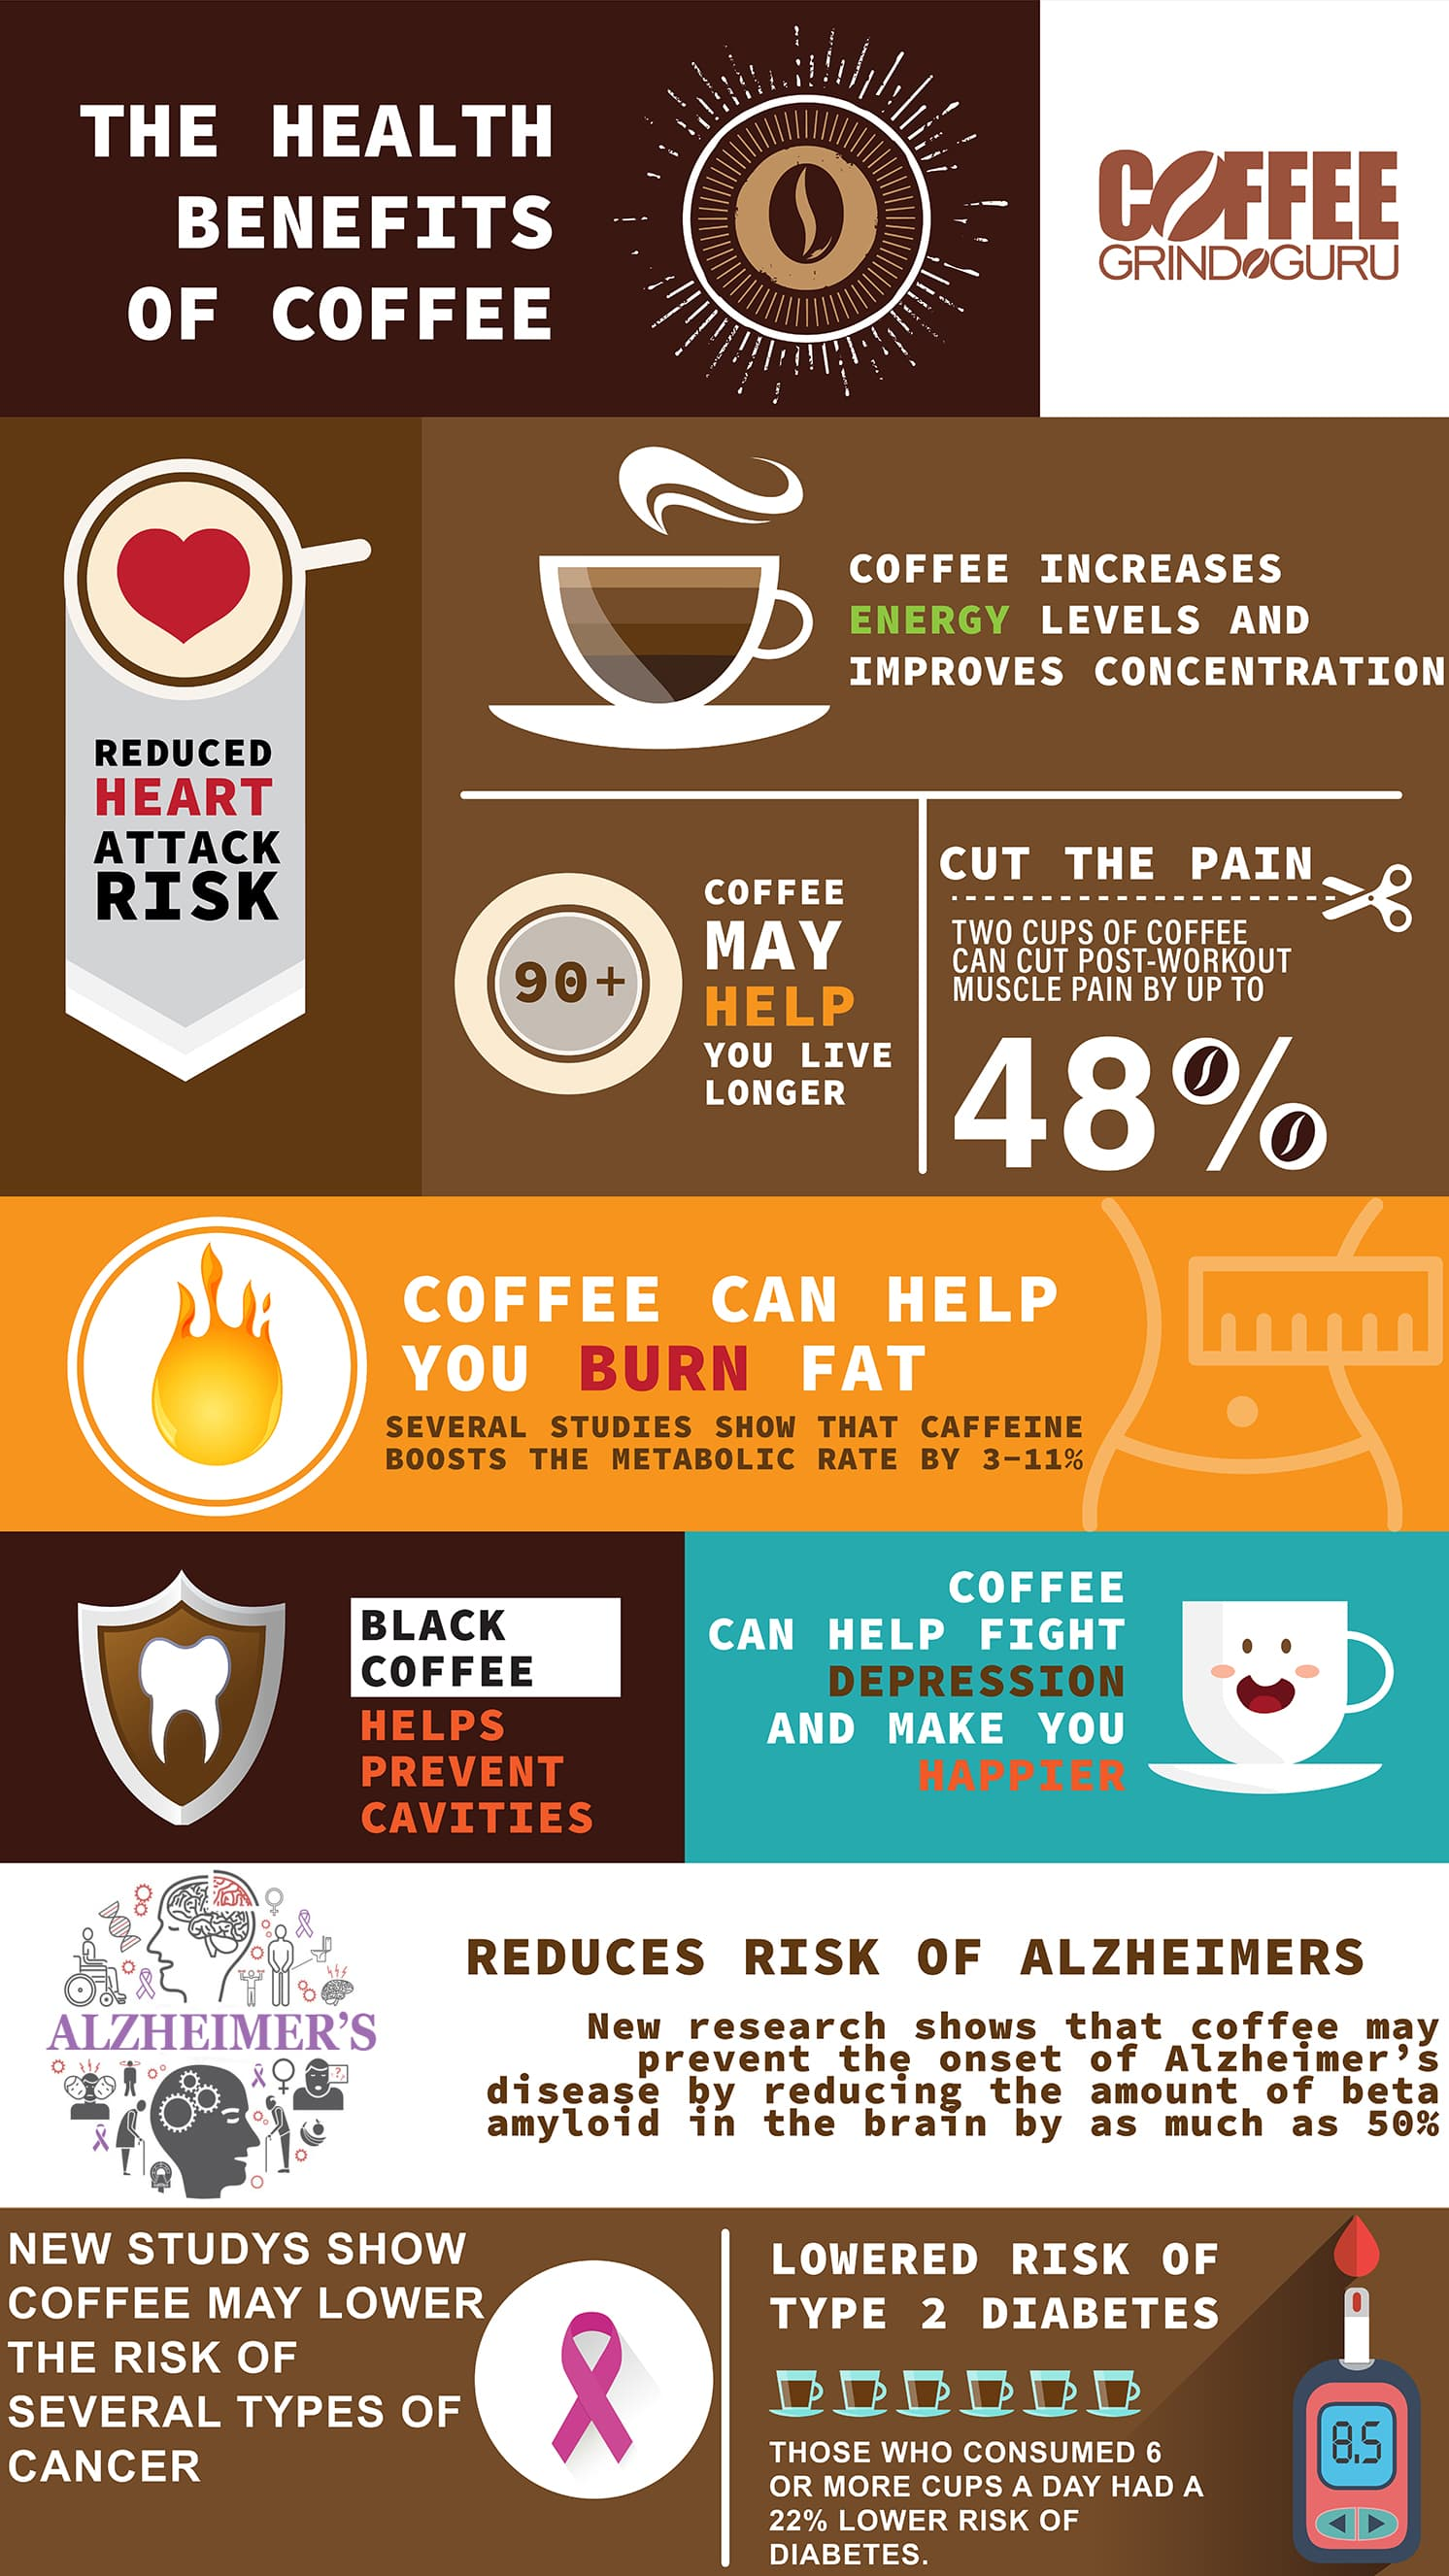 health-benefits-of-coffee.jpg